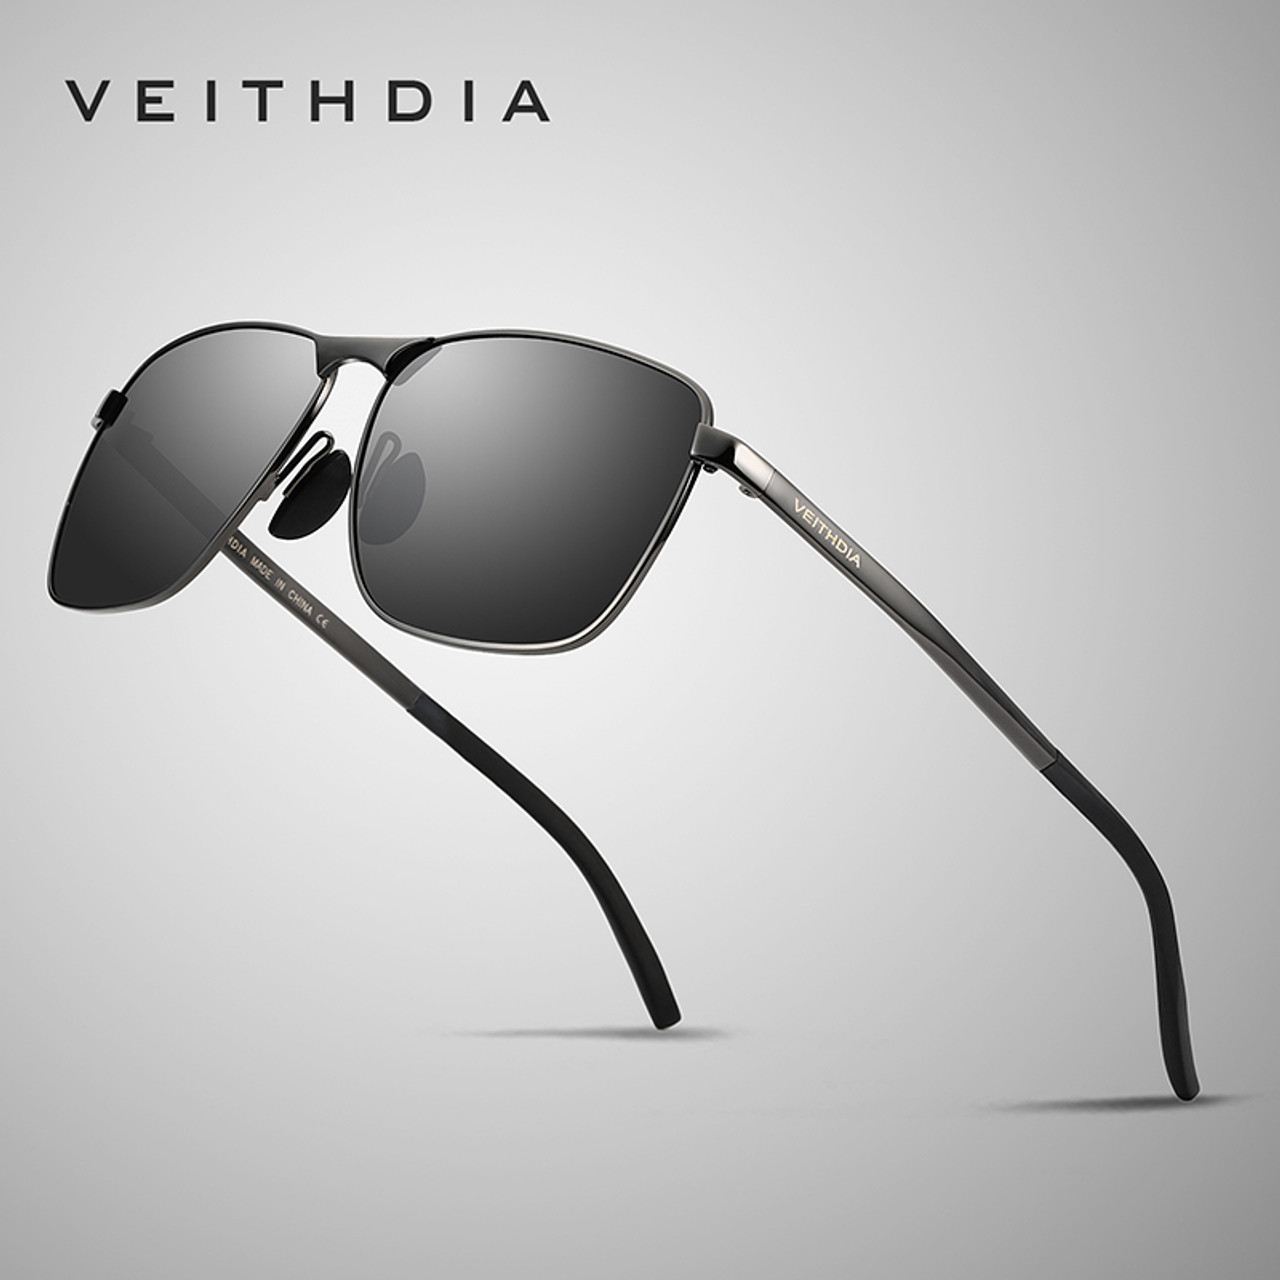 a6ed7a9183d Veithdia 2018 Brand Designer Fashion Square Sunglasses Mens Polarized  Coating Mirror Sun Glasses Eyewear Accessorie For ...